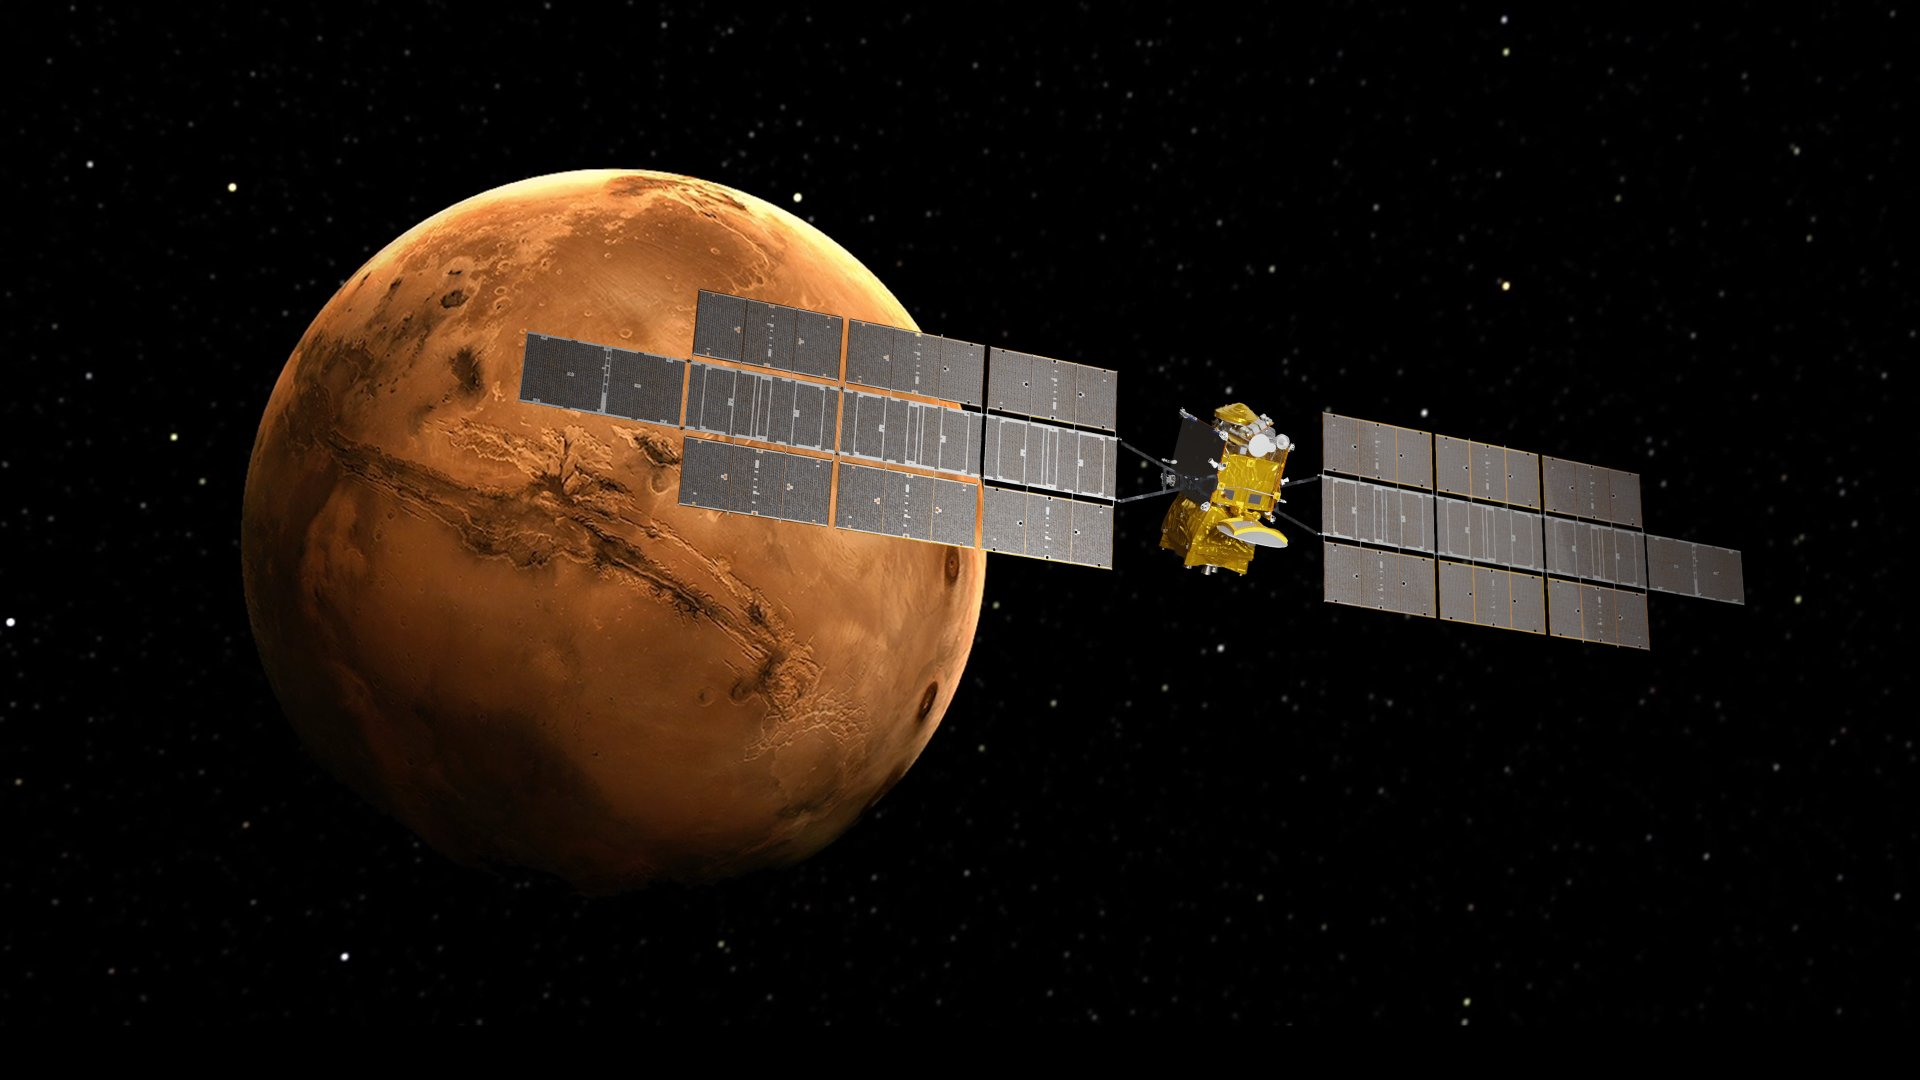 ERO will reach Mars orbit, capture orbiting samples launched from the Red Planet and bring them back to Earth